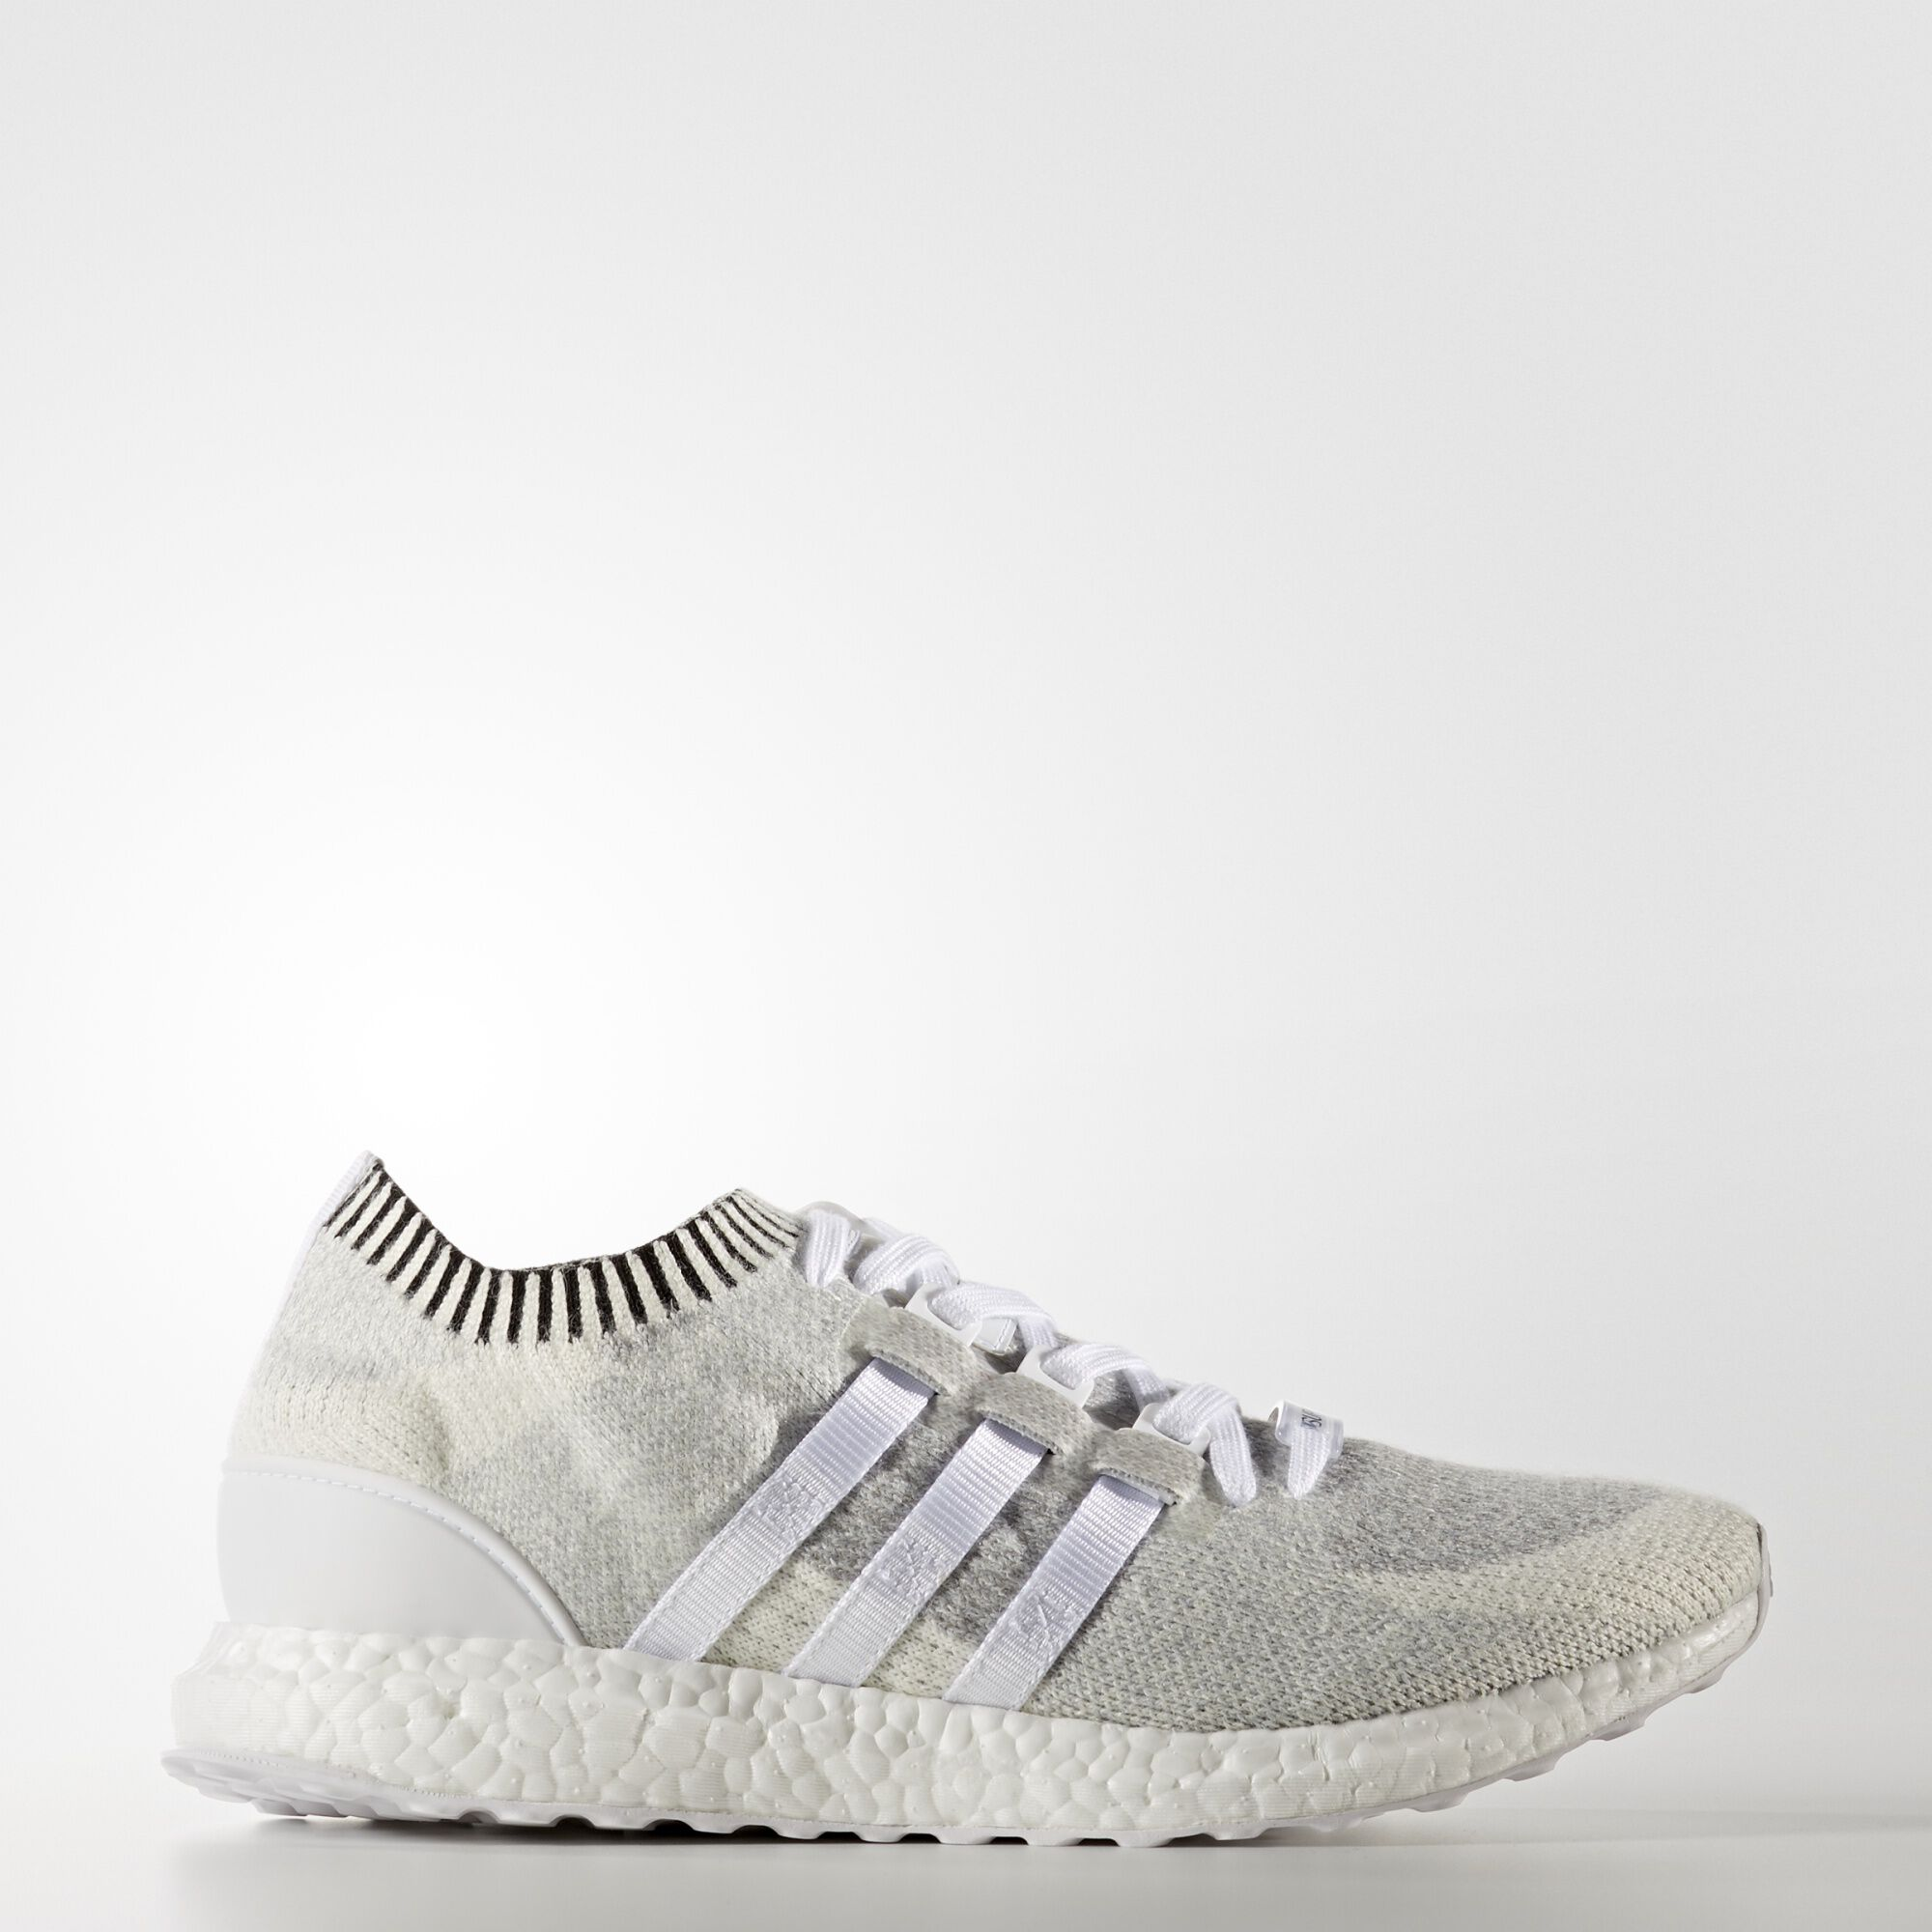 adidas EQT Support Ultra Primeknit Vintage White BB1242 iFlex.no